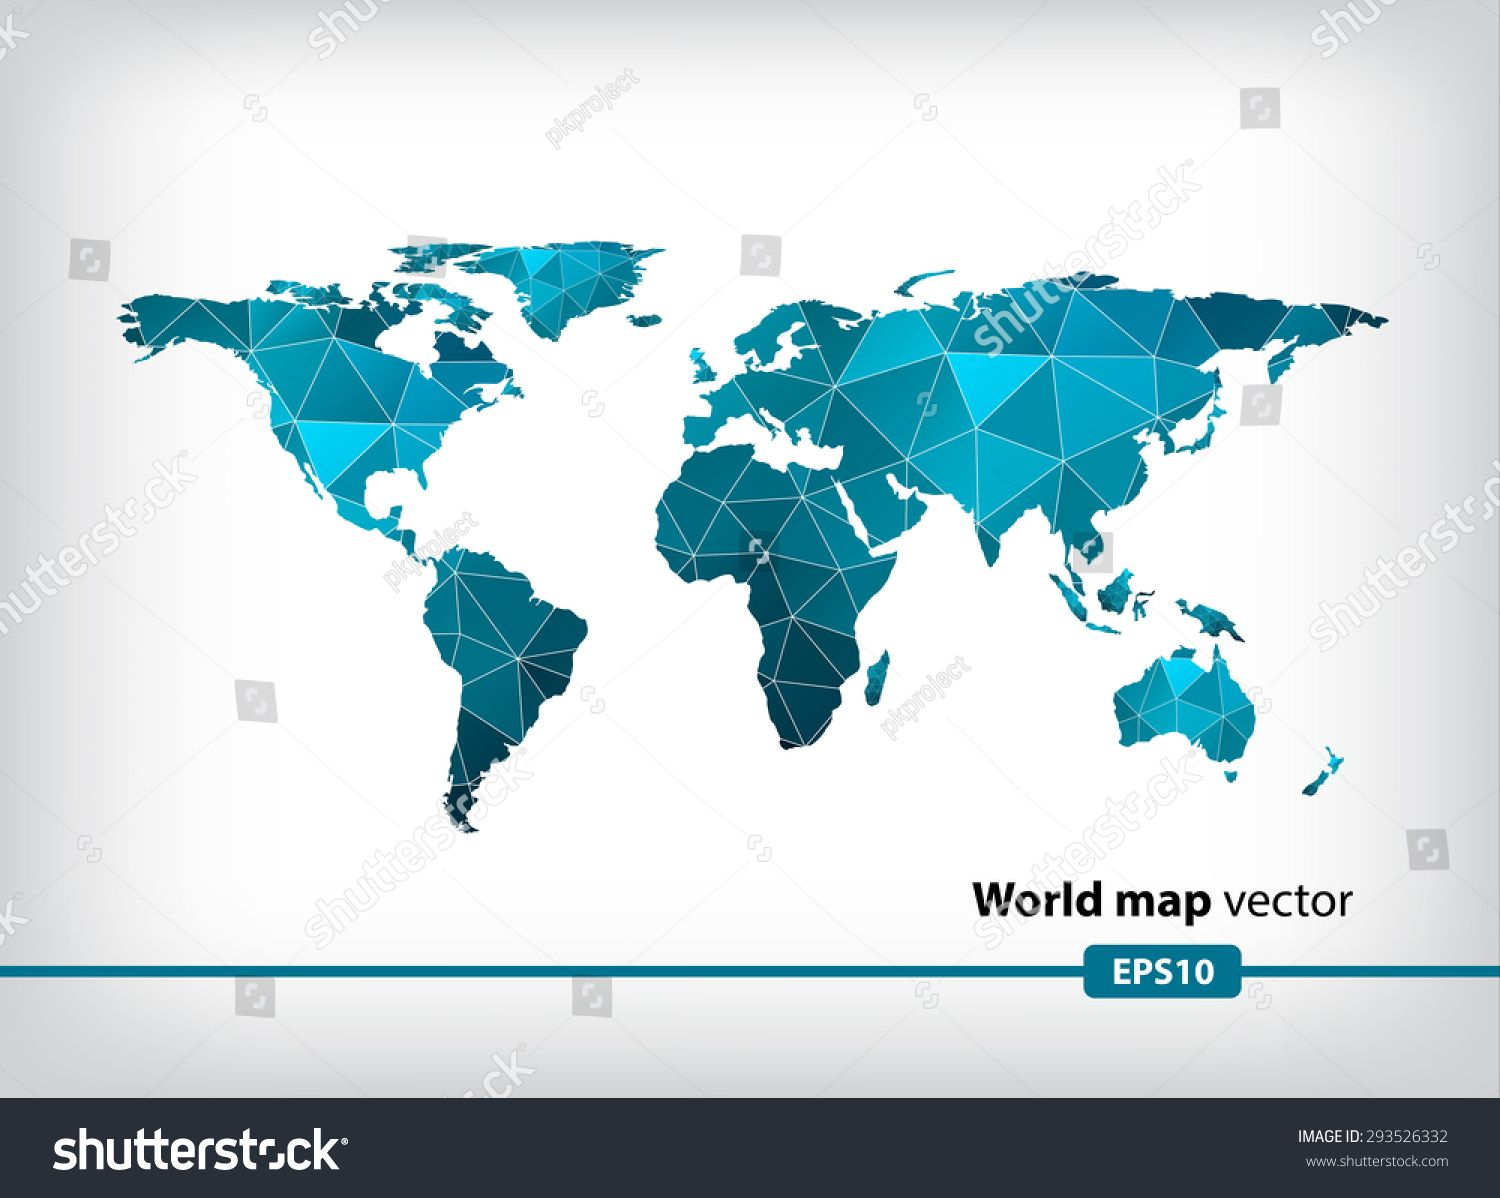 Blue geometric world map vector background eps 10 format design blue geometric world map vector background eps 10 format gumiabroncs Images